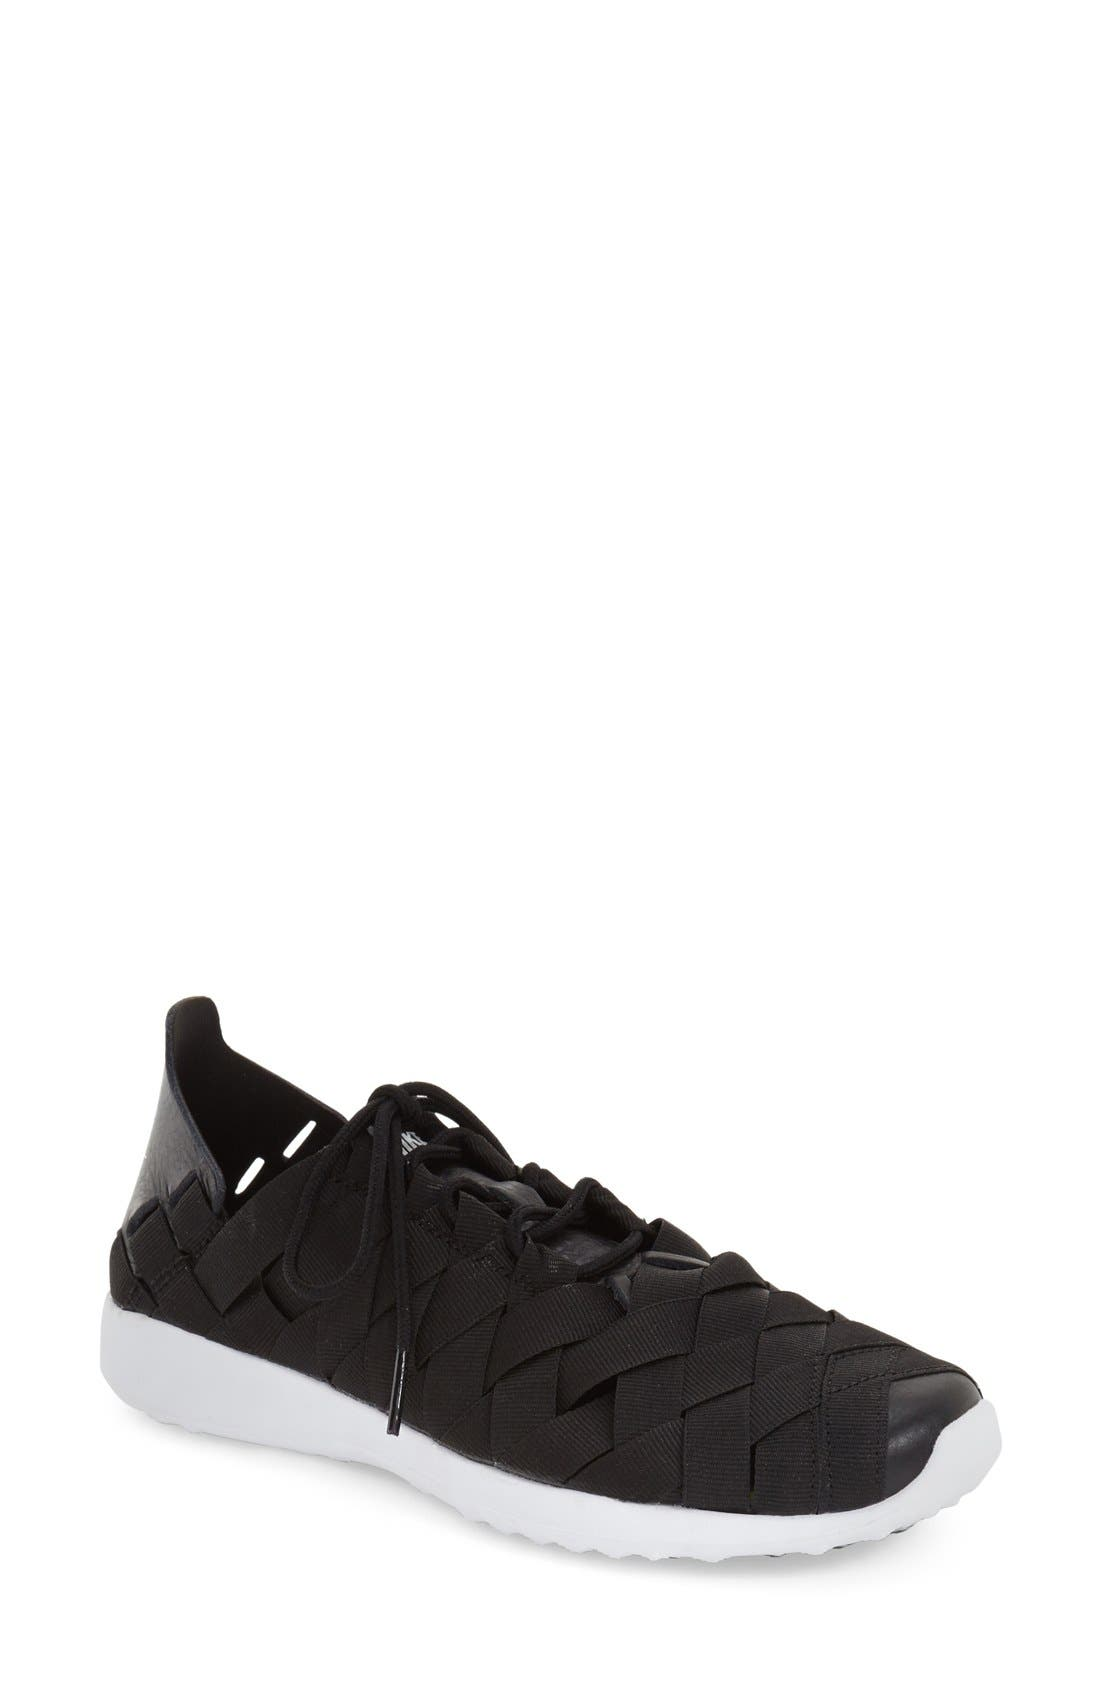 'Juvenate - Woven' Sneaker,                         Main,                         color, 001